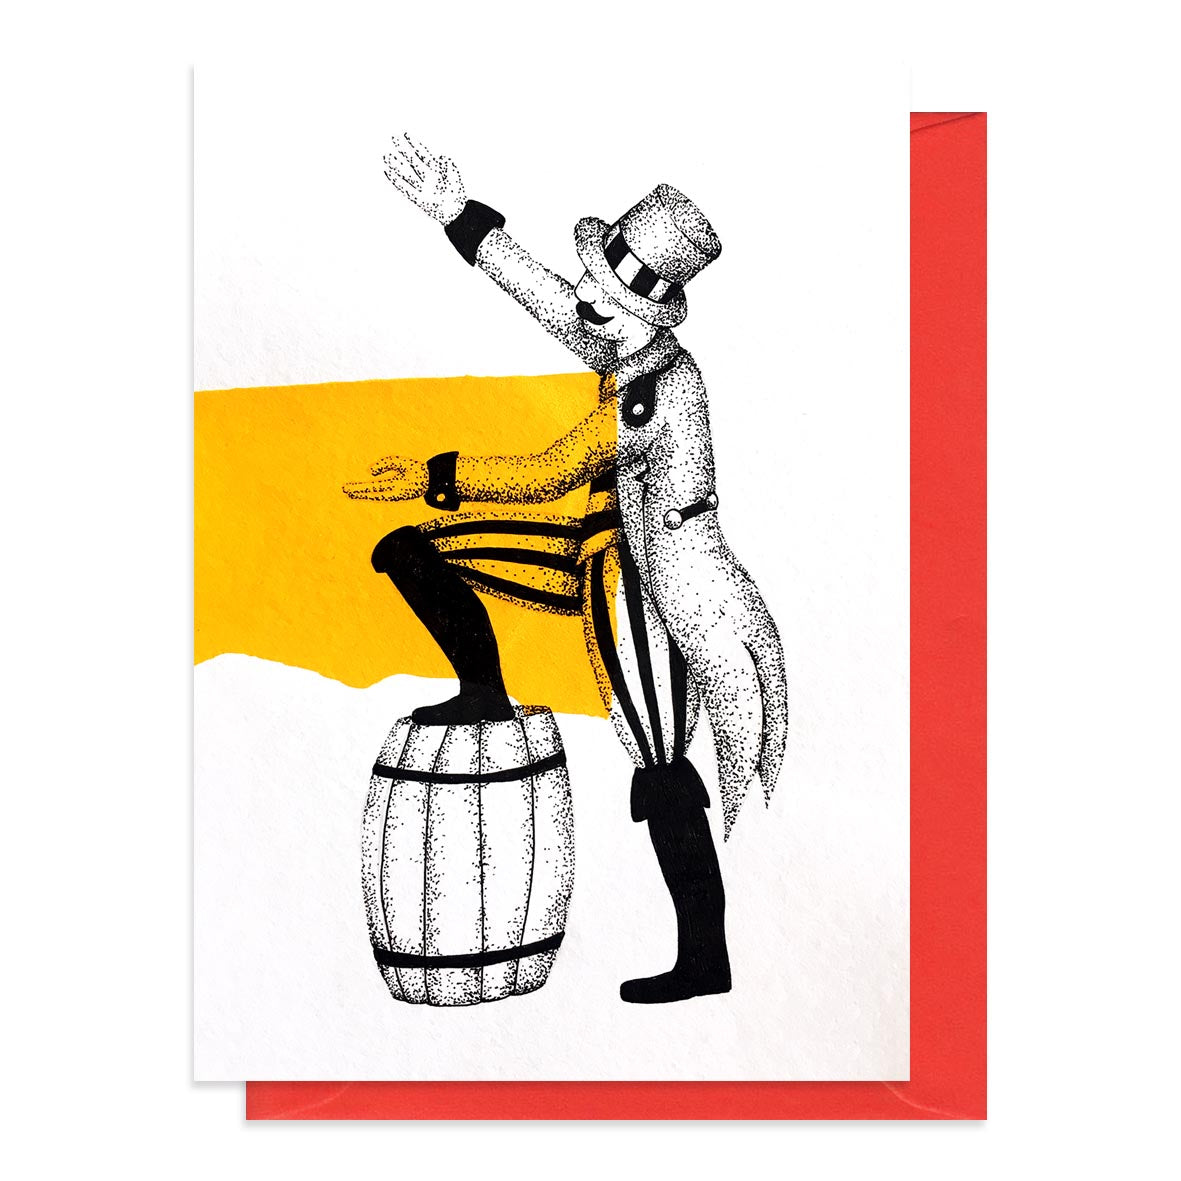 Greetings card featuring an illustration of a circus ringmaster